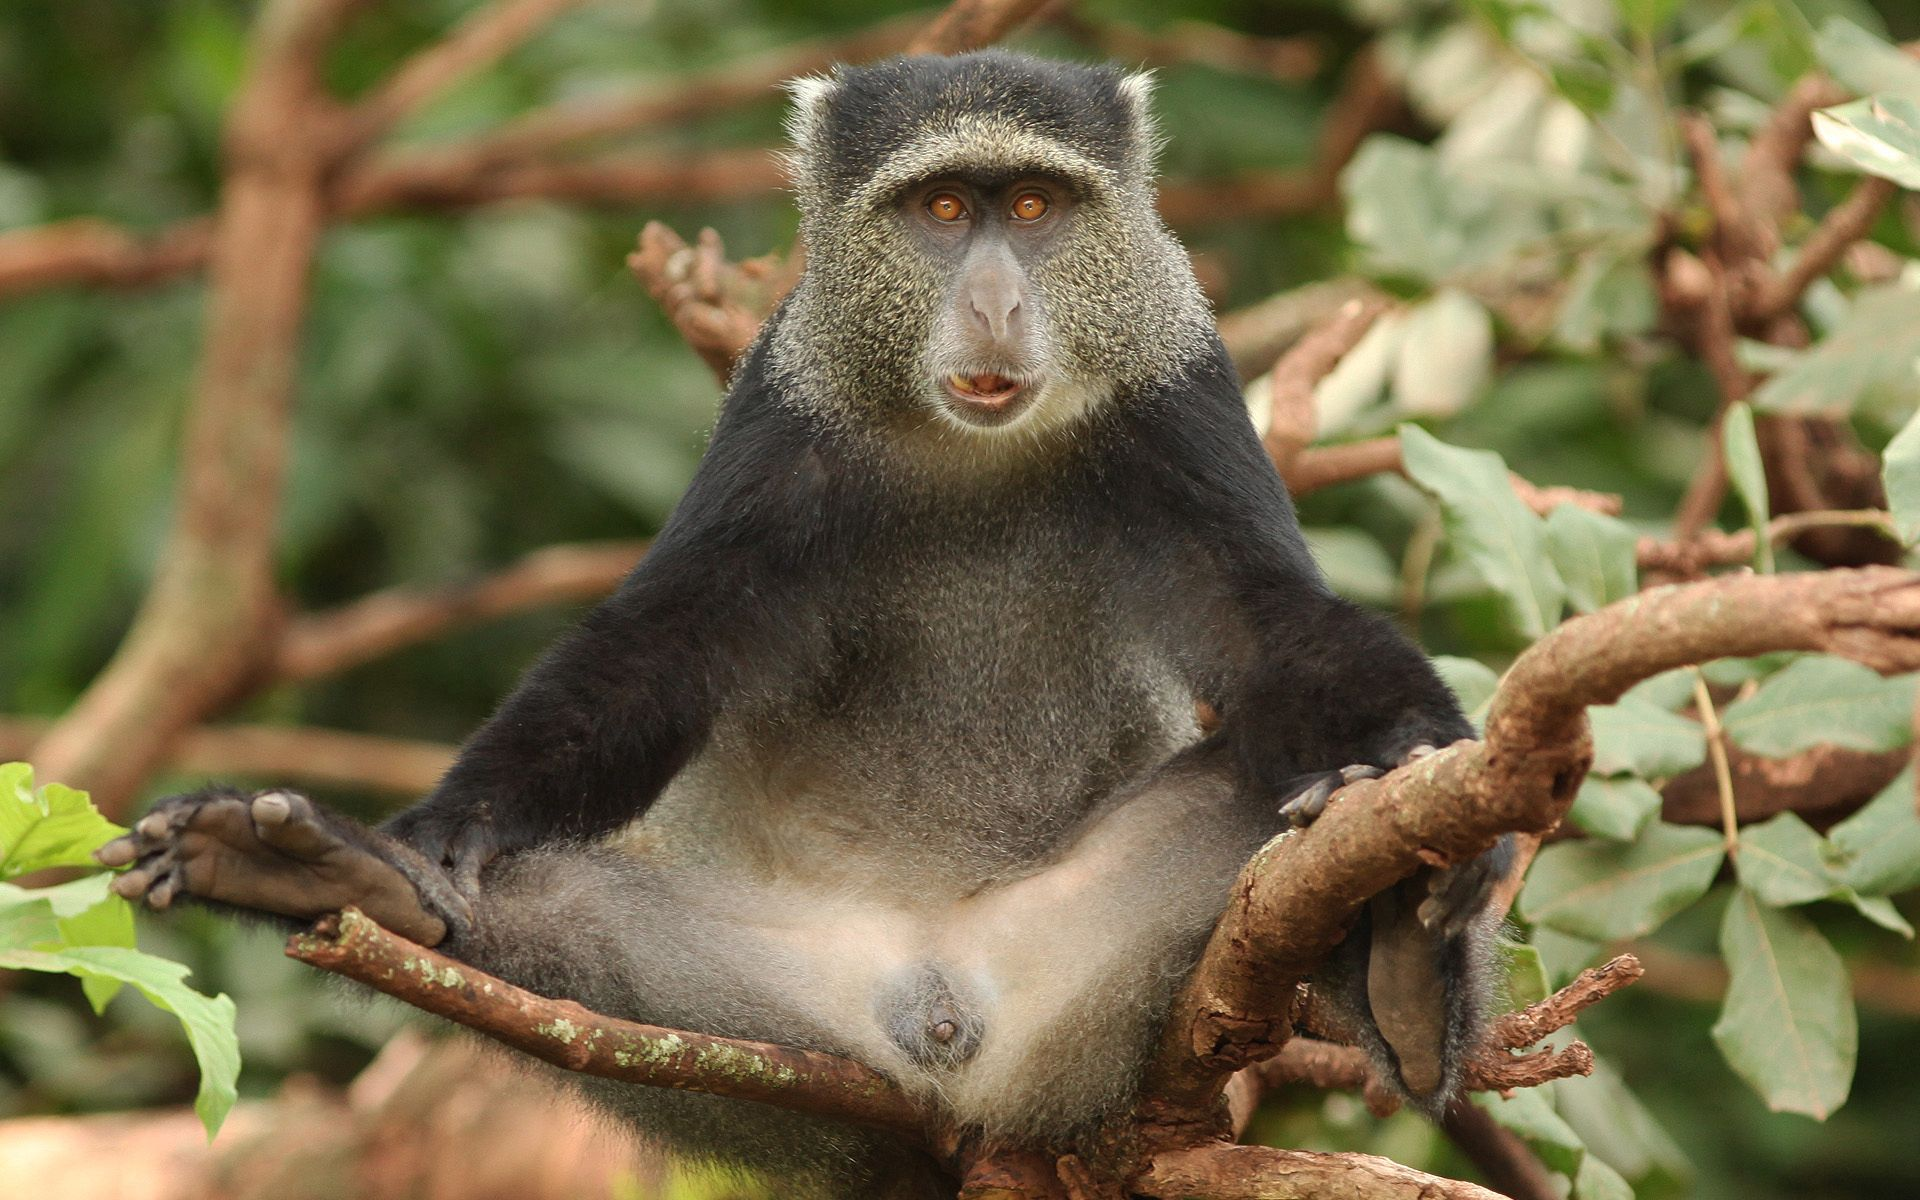 100073 download wallpaper Animals, Africa, Monkey, Wood, Tree, Sit, Funny screensavers and pictures for free